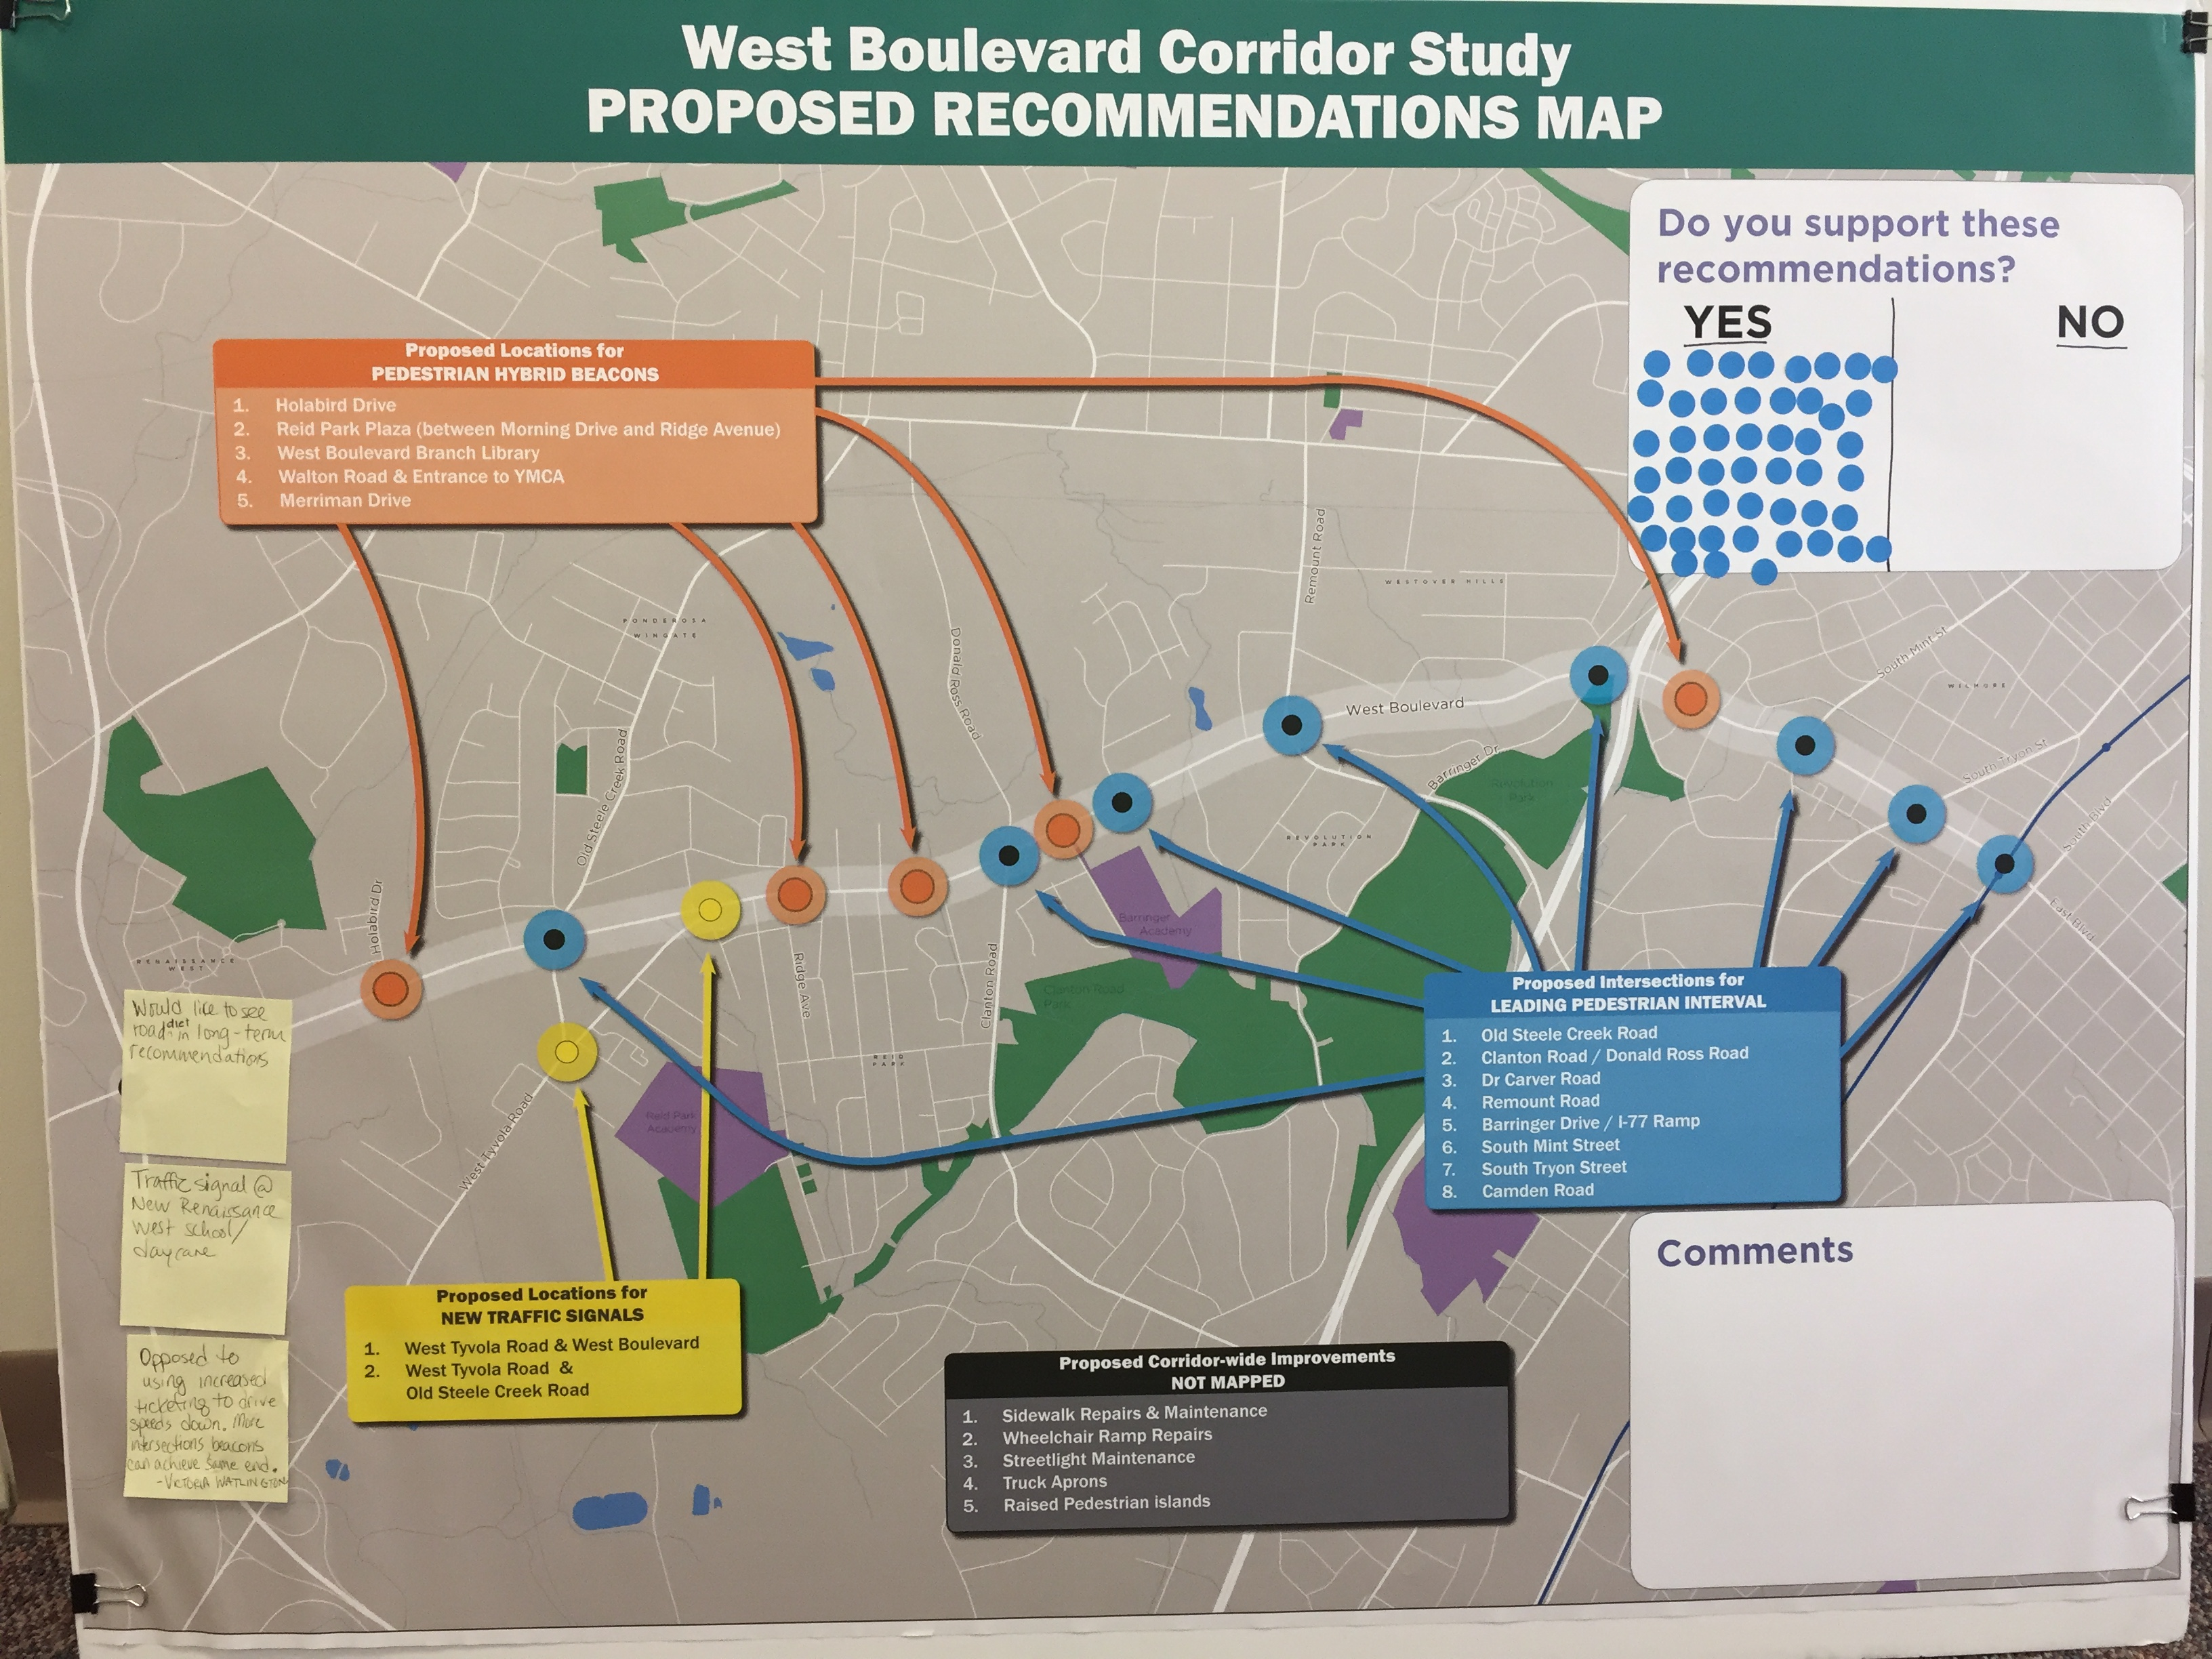 Charlotte road construction projects - Proposed Recommendations Board Feedback